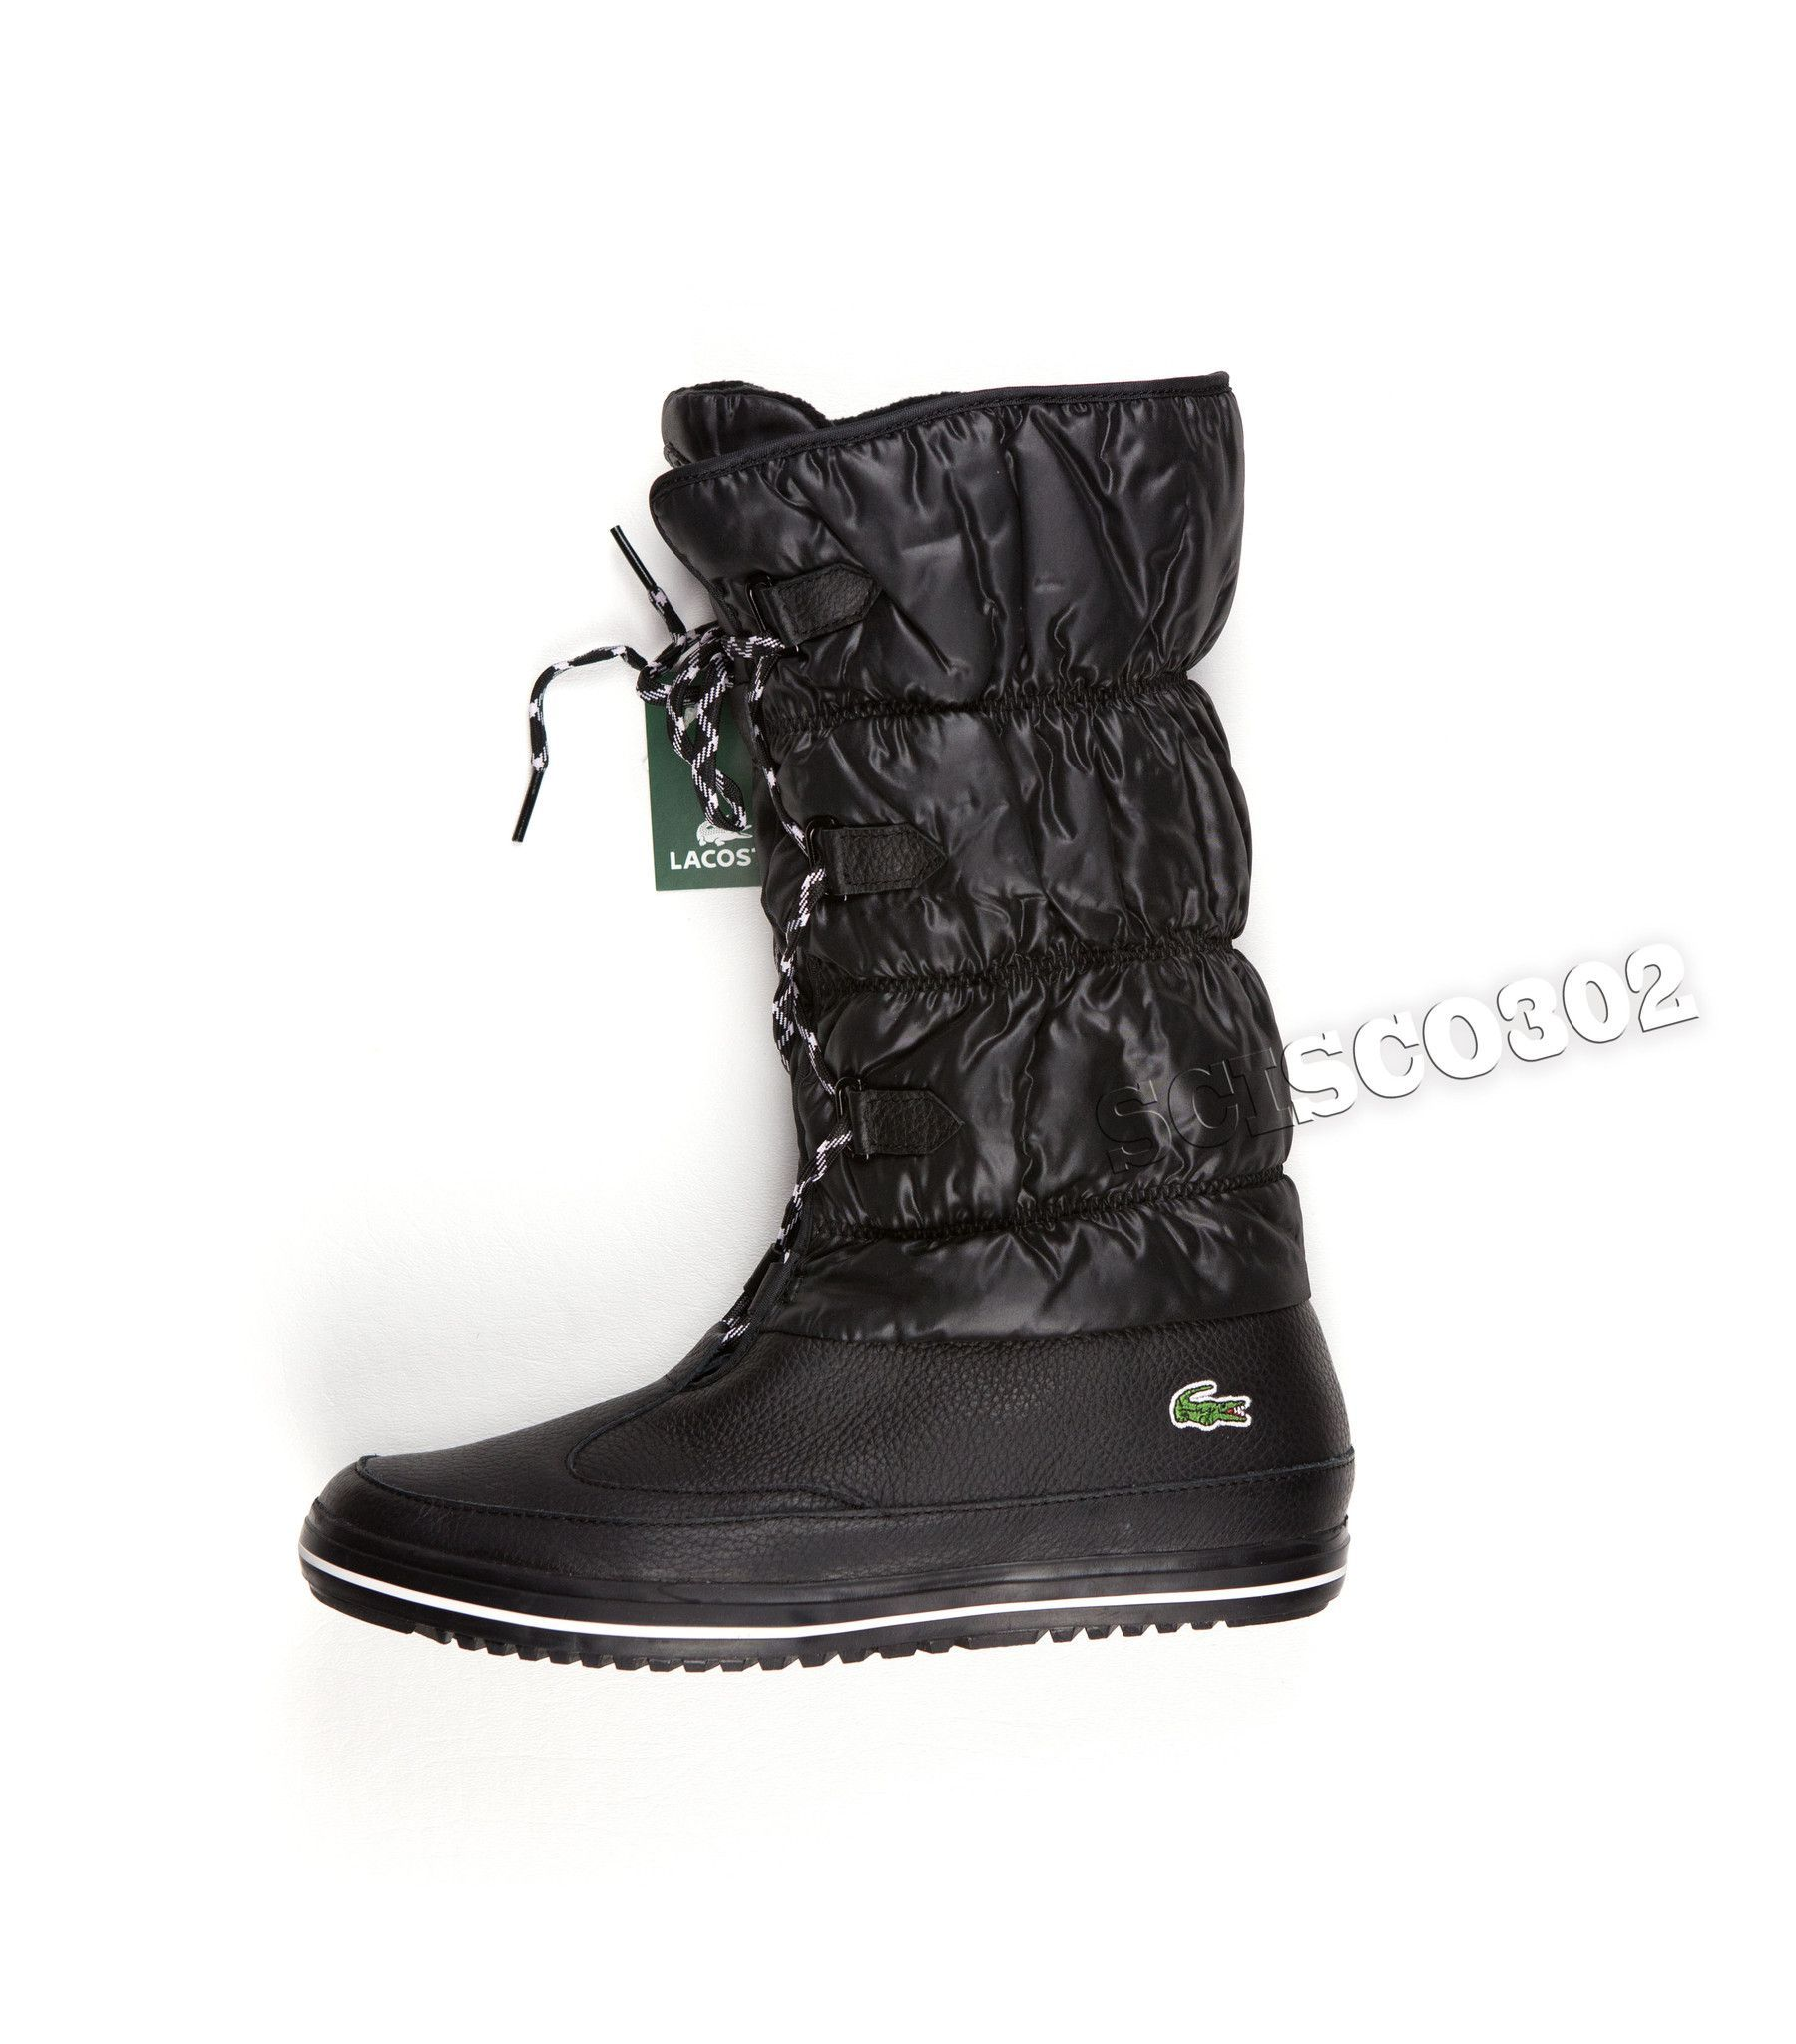 Lacoste Boots Tuilerie PS Winter Boots